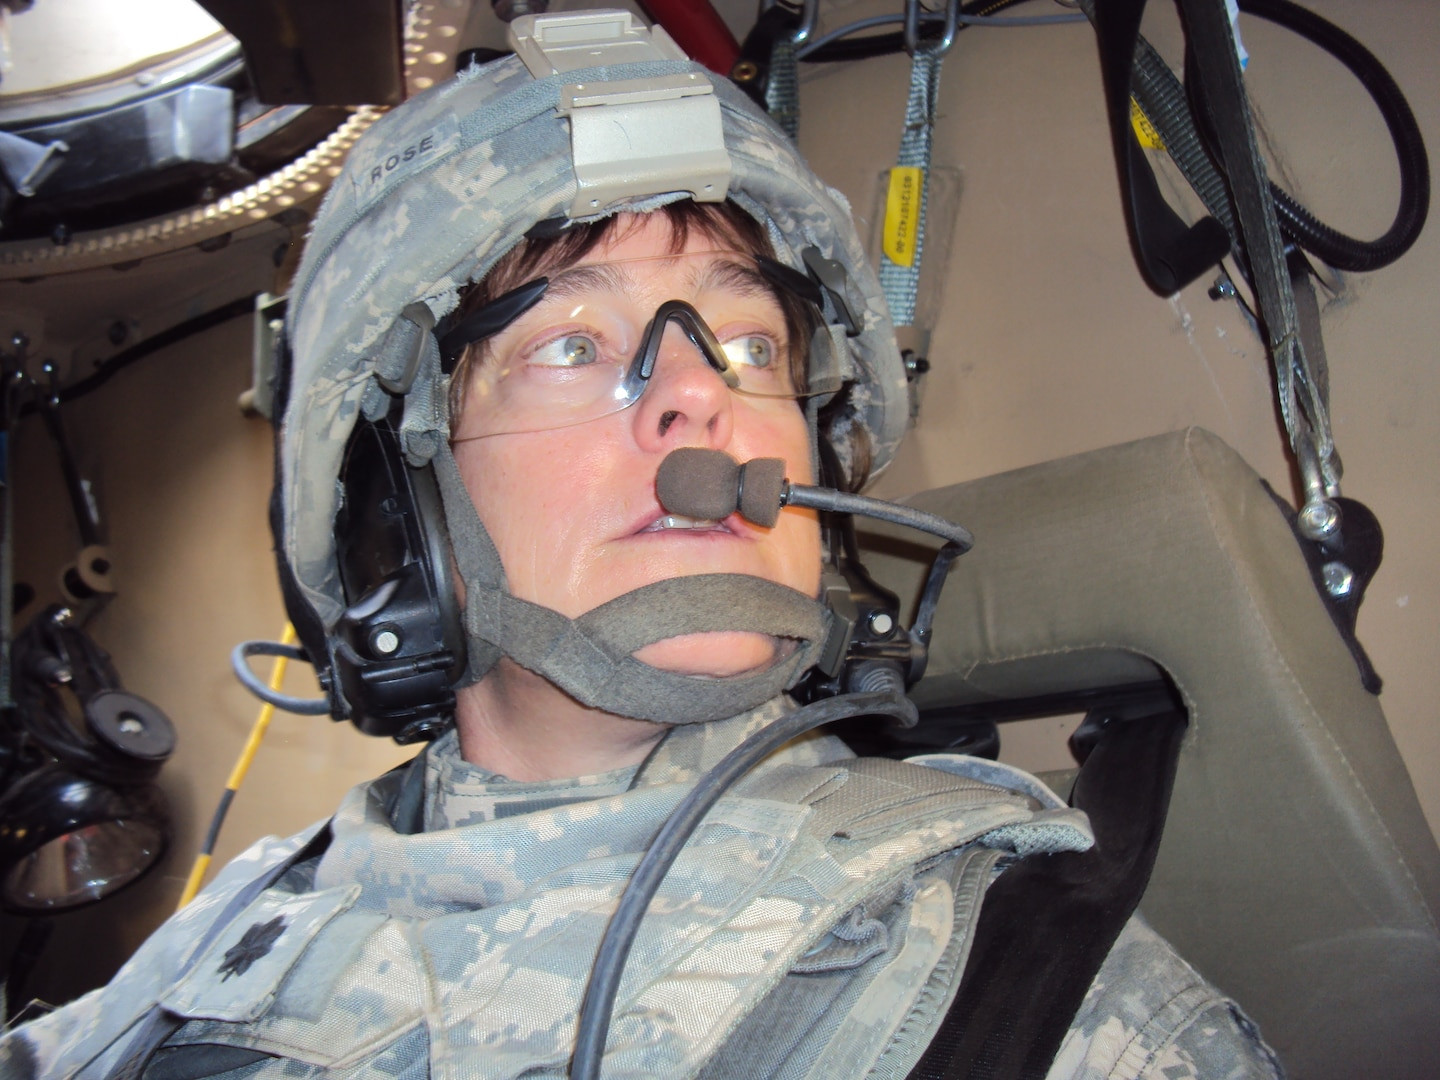 Lt. Col. Michelle Rose, commander of the 529th Combat Support Sustainment Battalion, during their deployment to Afghanistan in 2011.